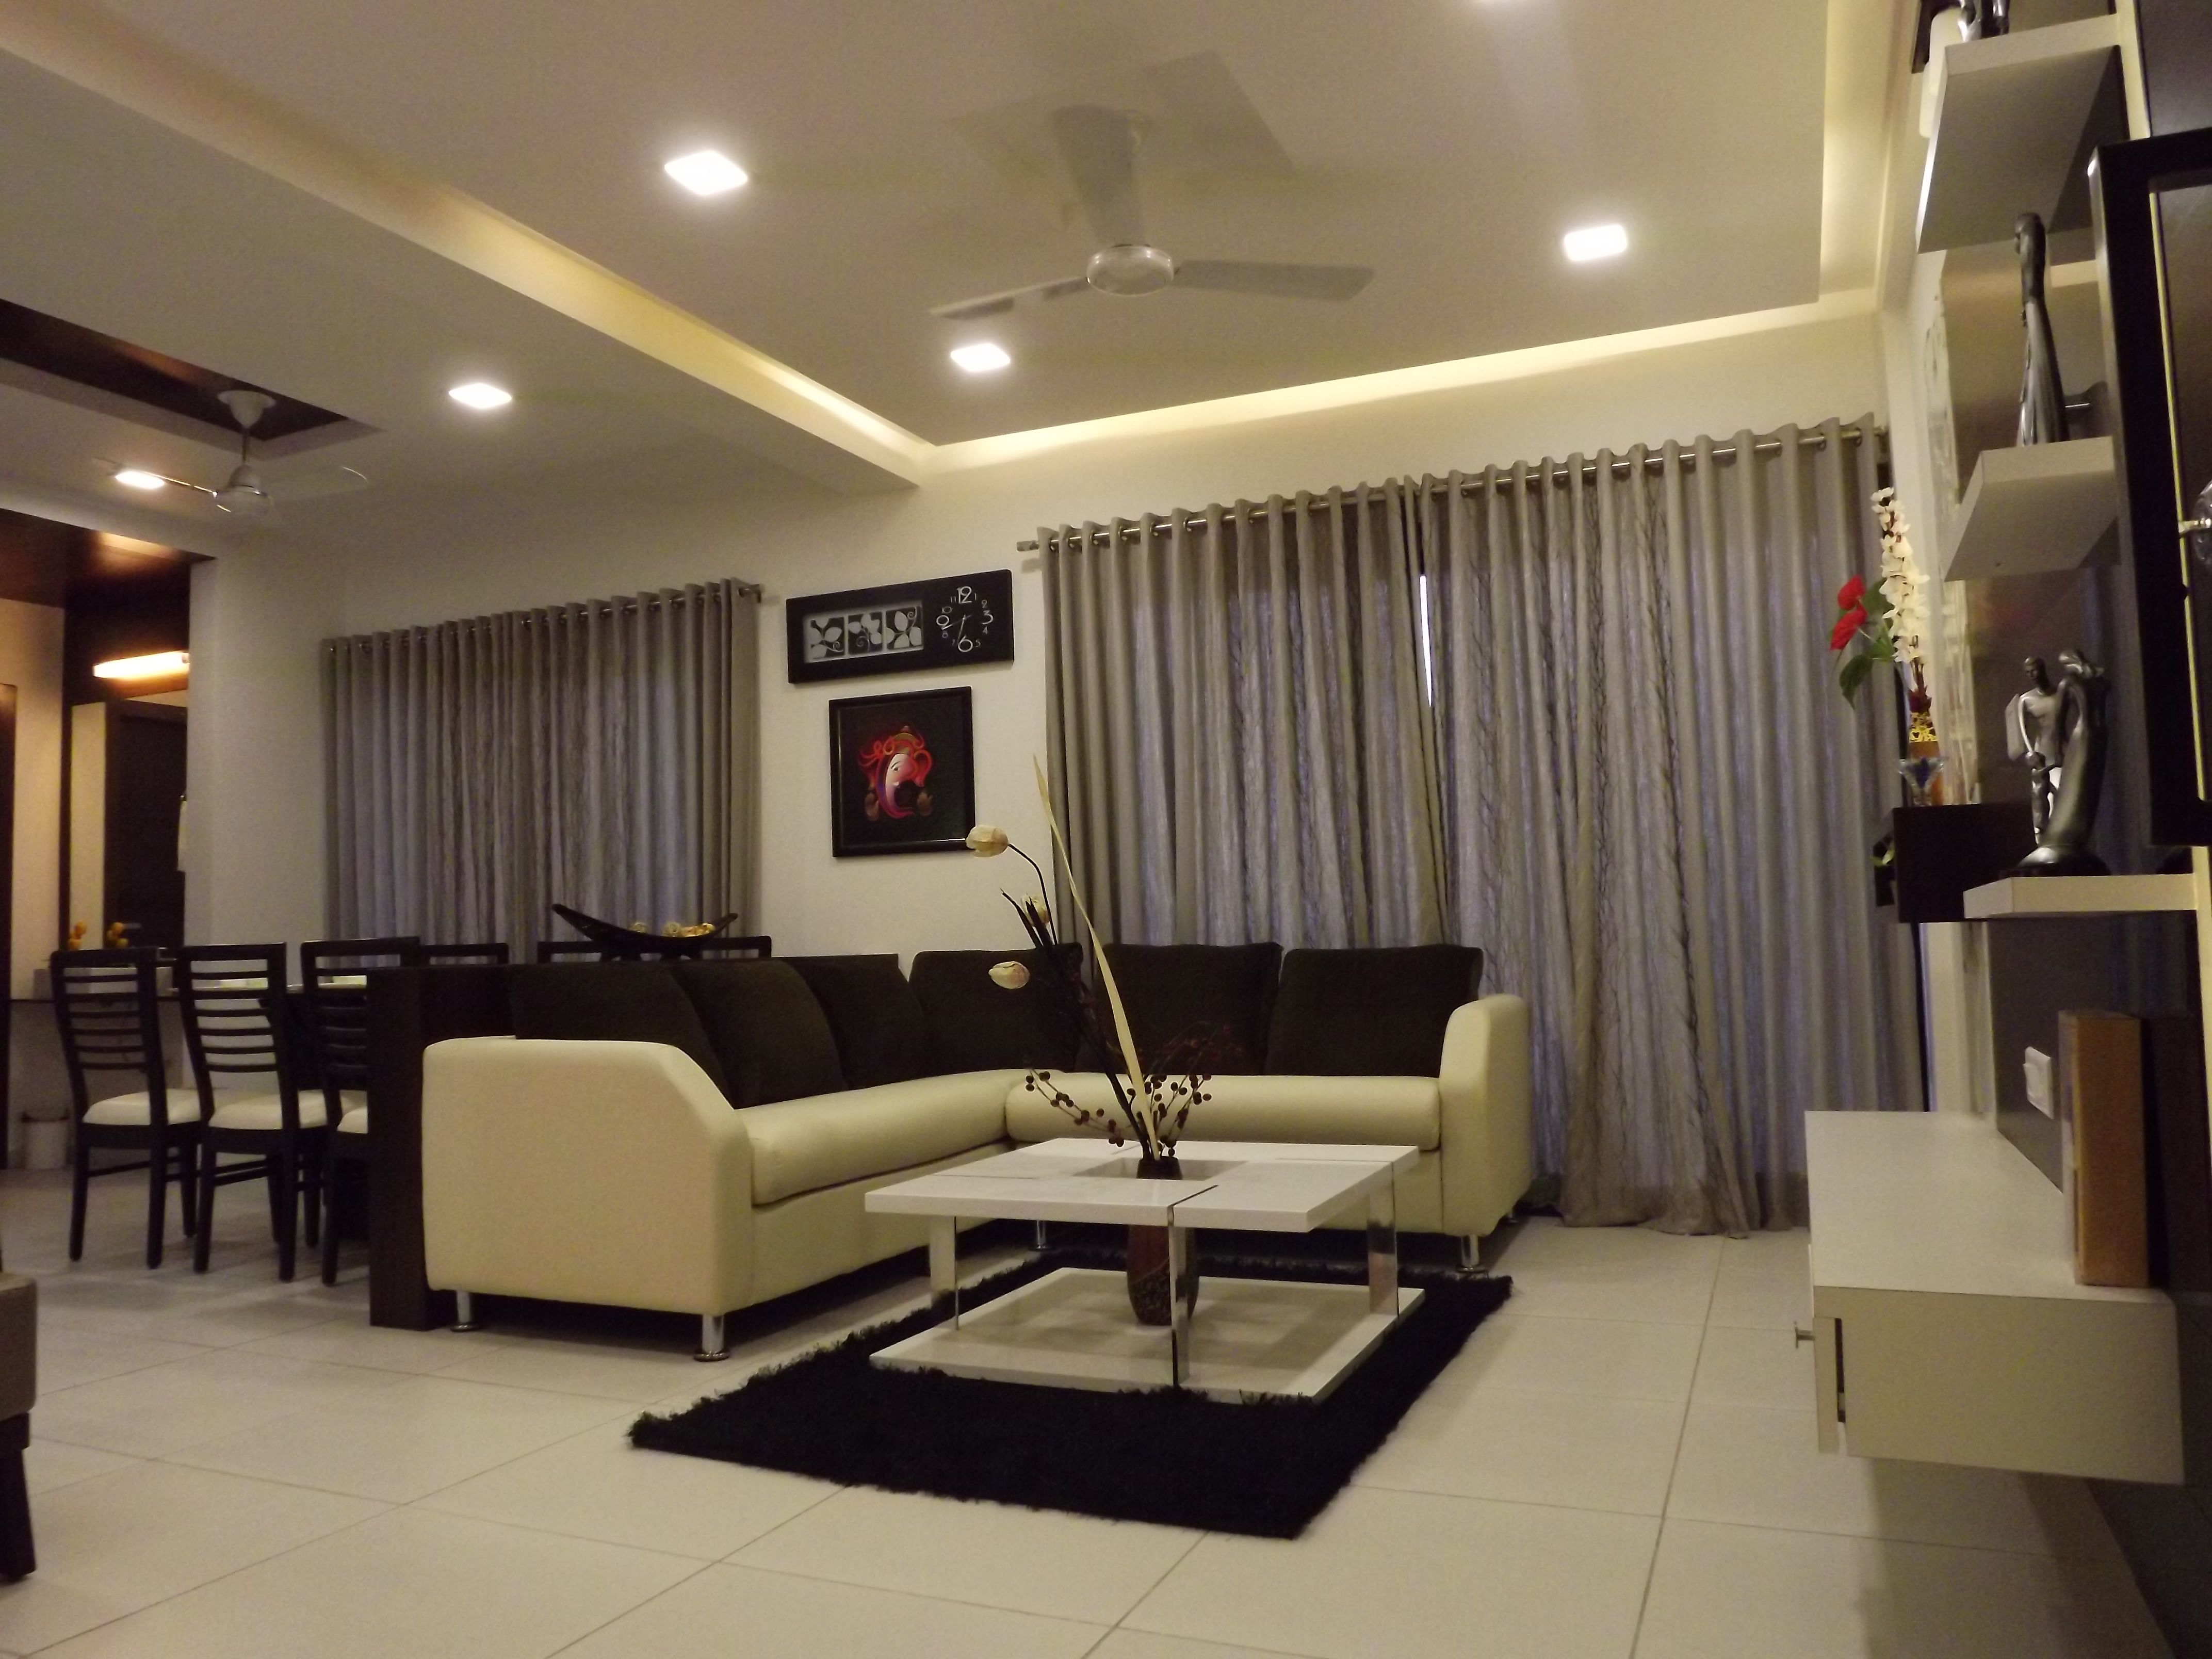 Architecture and interior design projects in India - Apartment ...